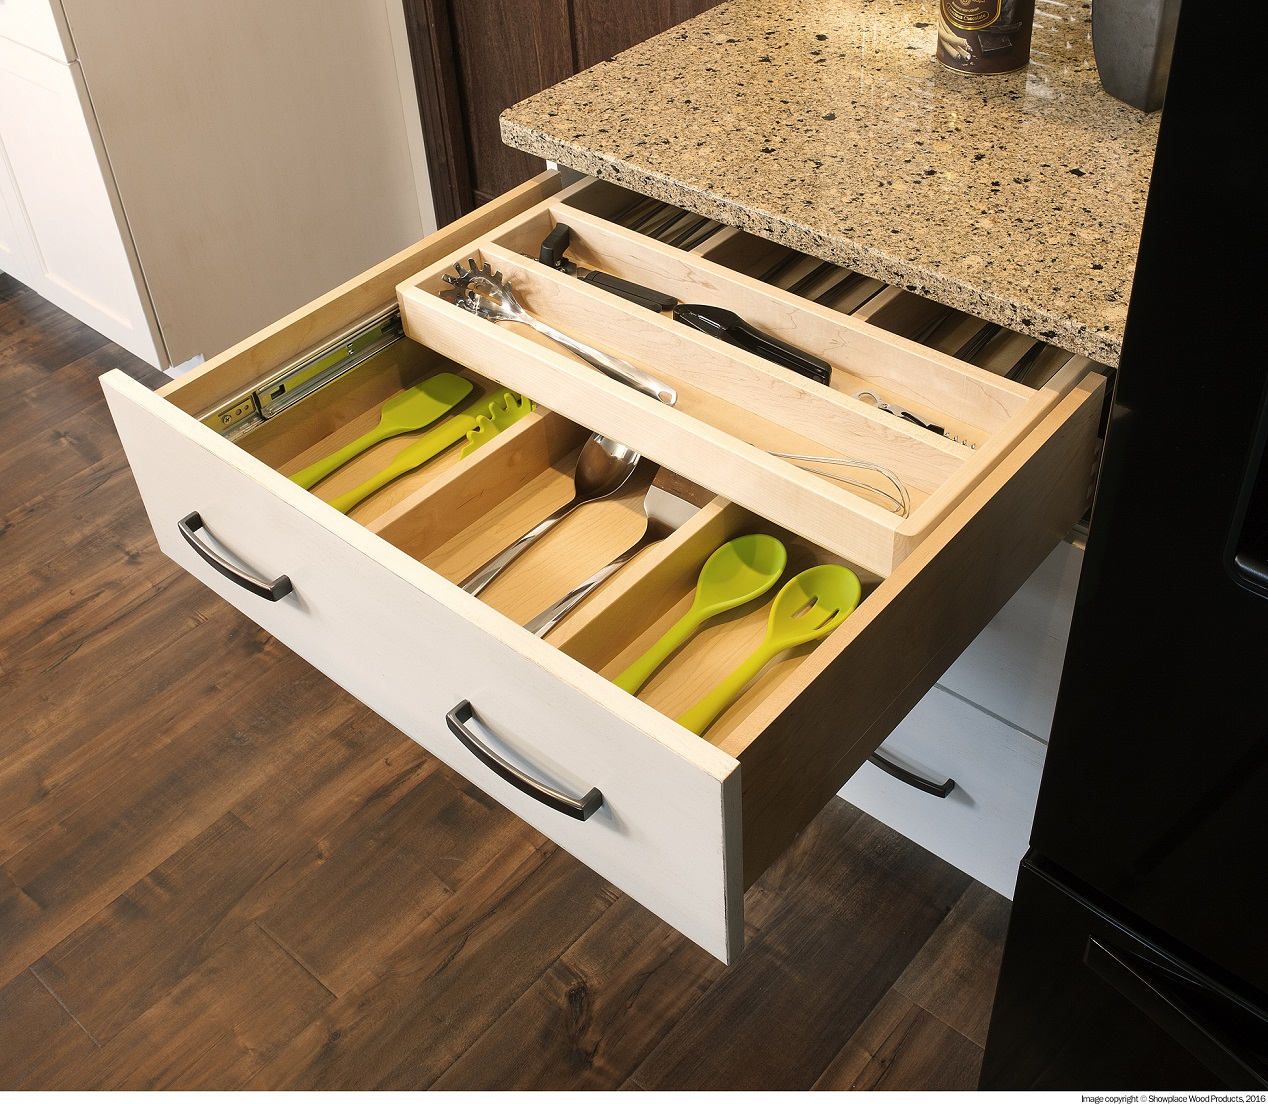 The Different Types Of Cabinet Storage Solutions (1)